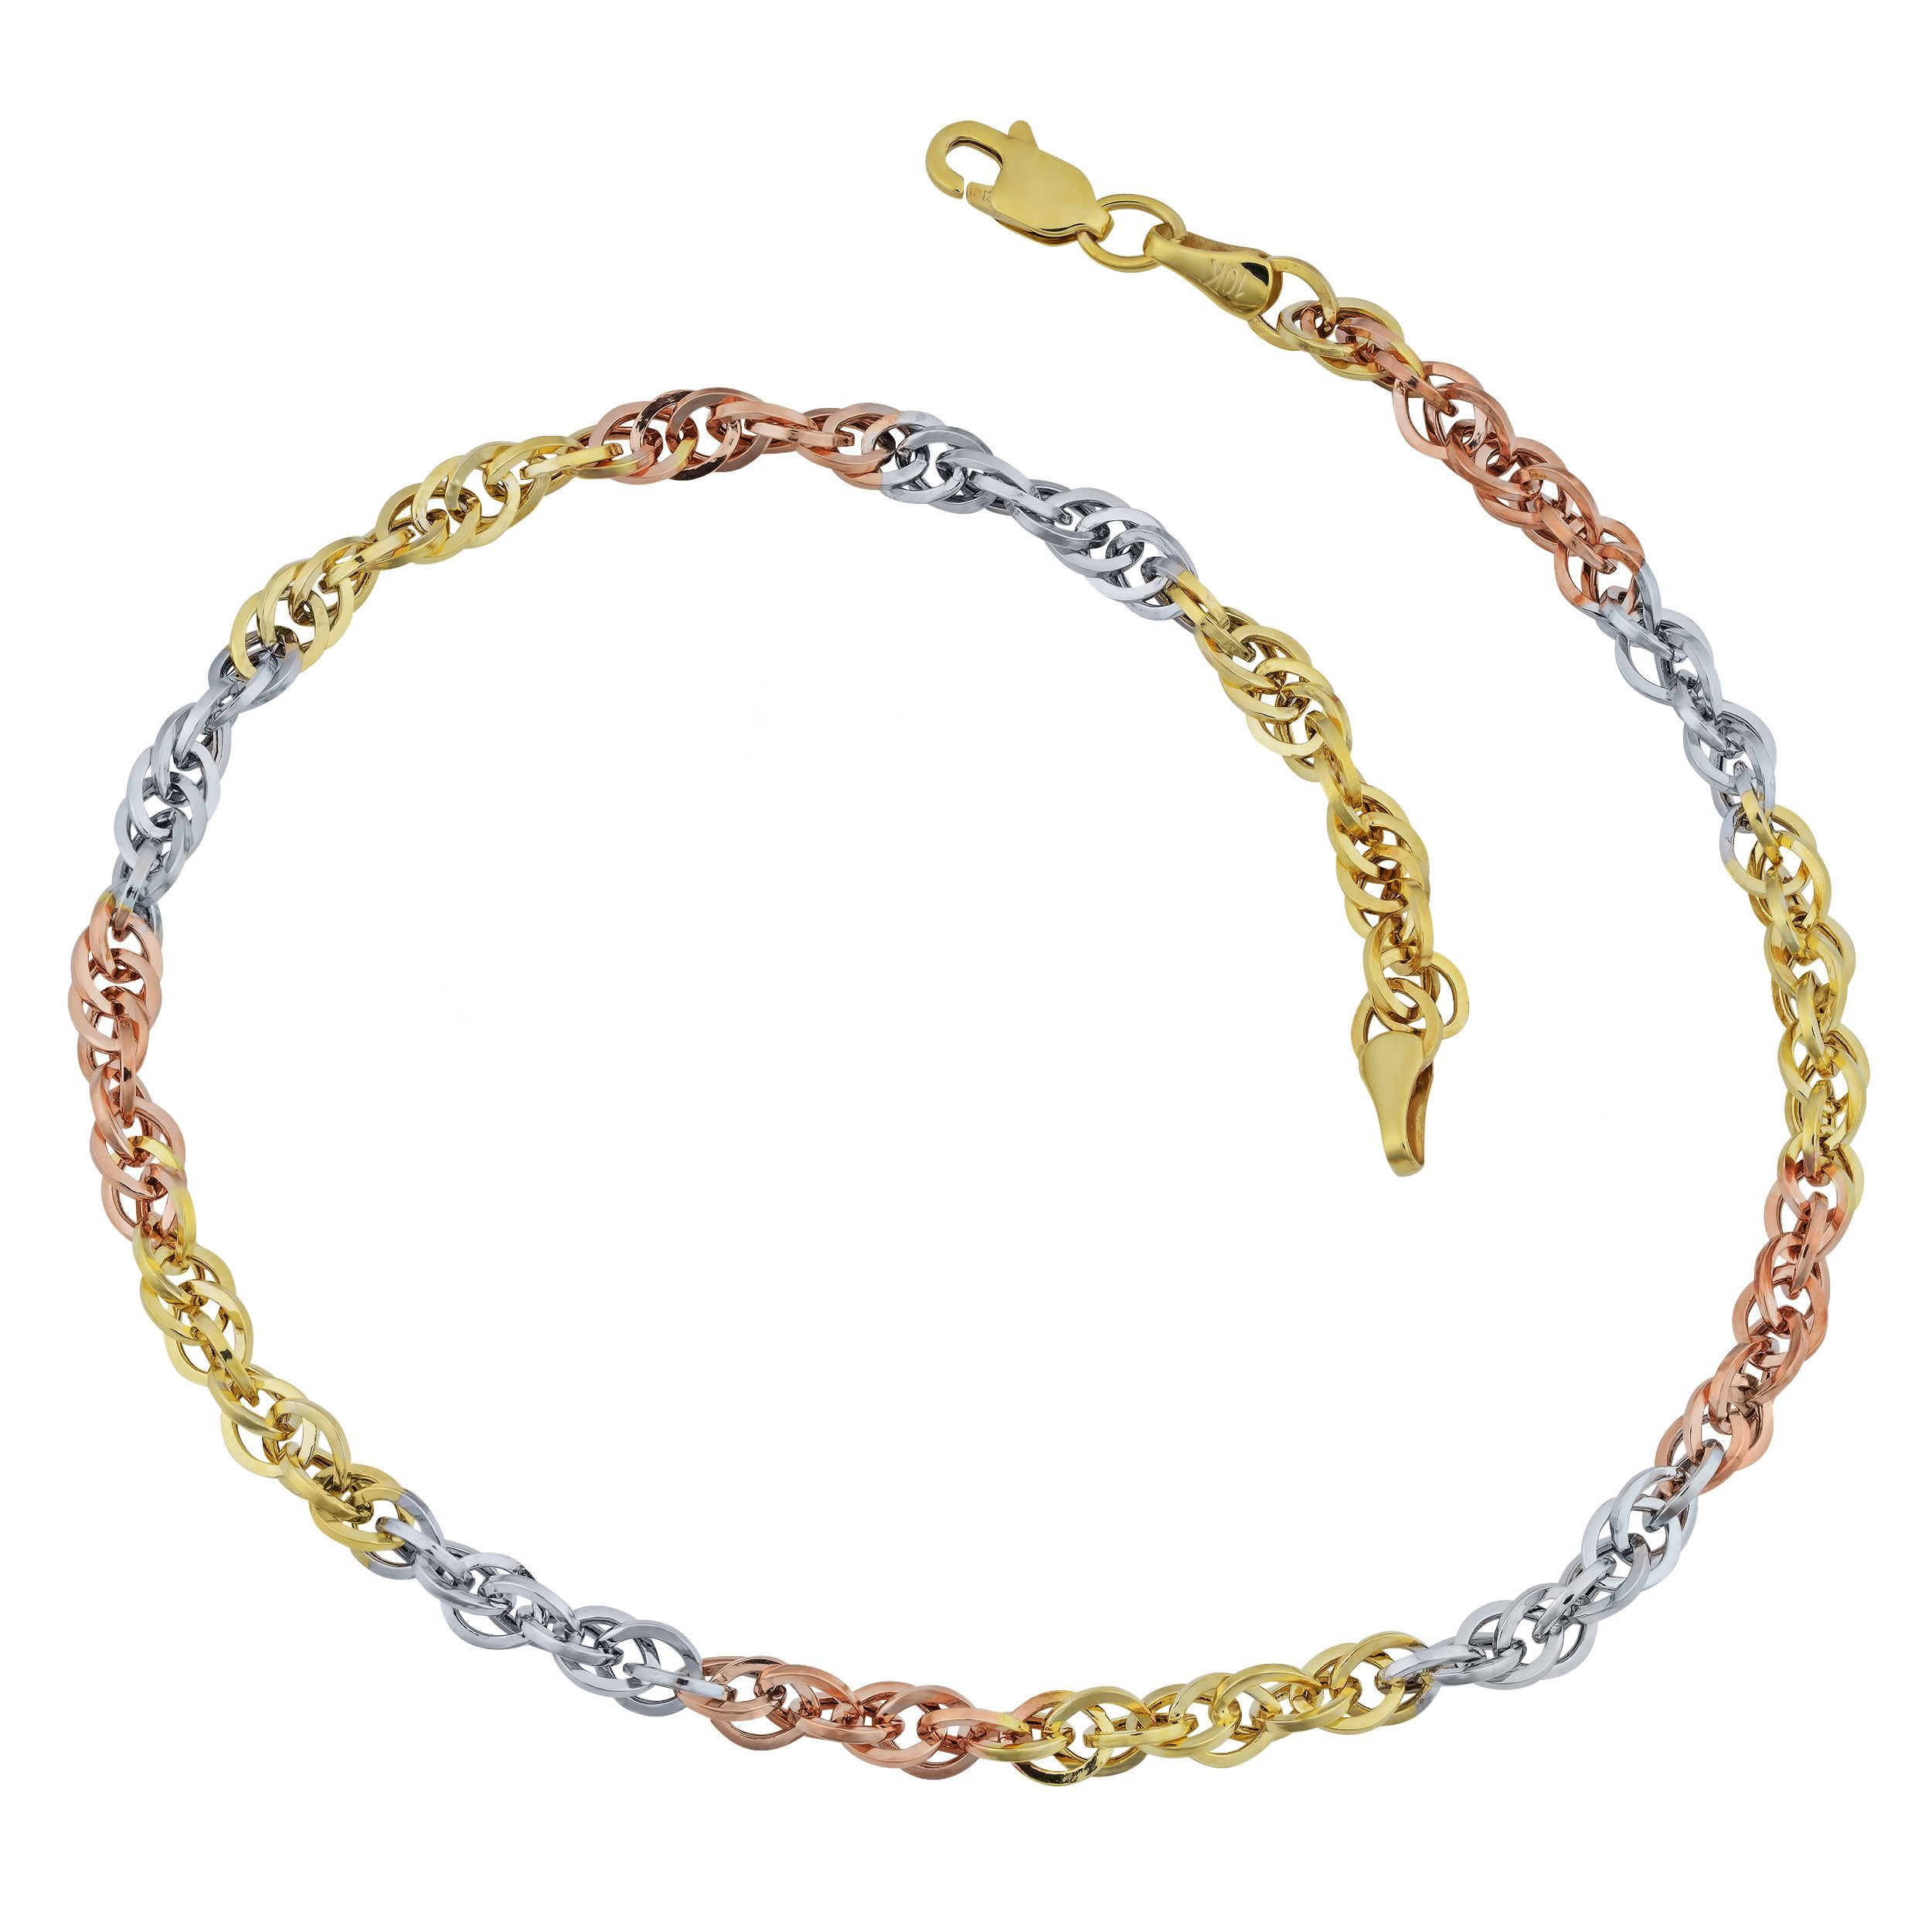 anklet chain gemstone quartz beach gold jewelry rose anklets for women pin